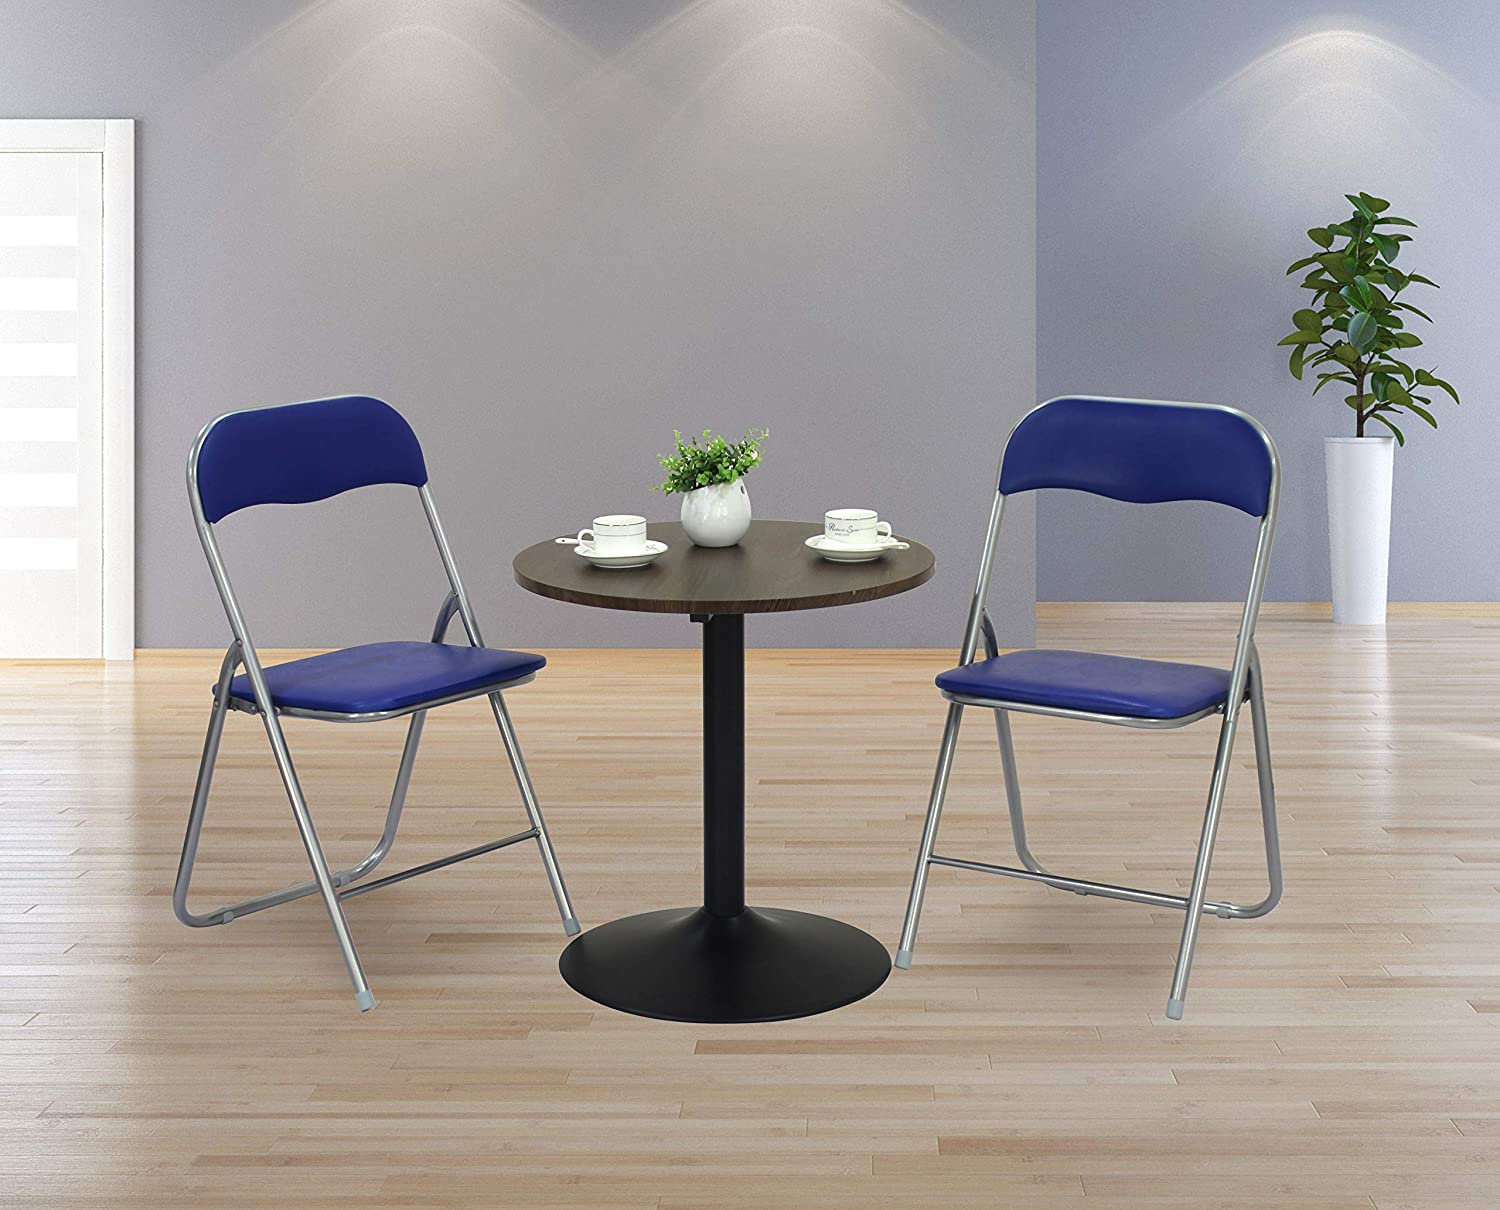 Folding Chairs with Upholstered Seat Back with Metal Frame Casual Office Training Chairs (2)